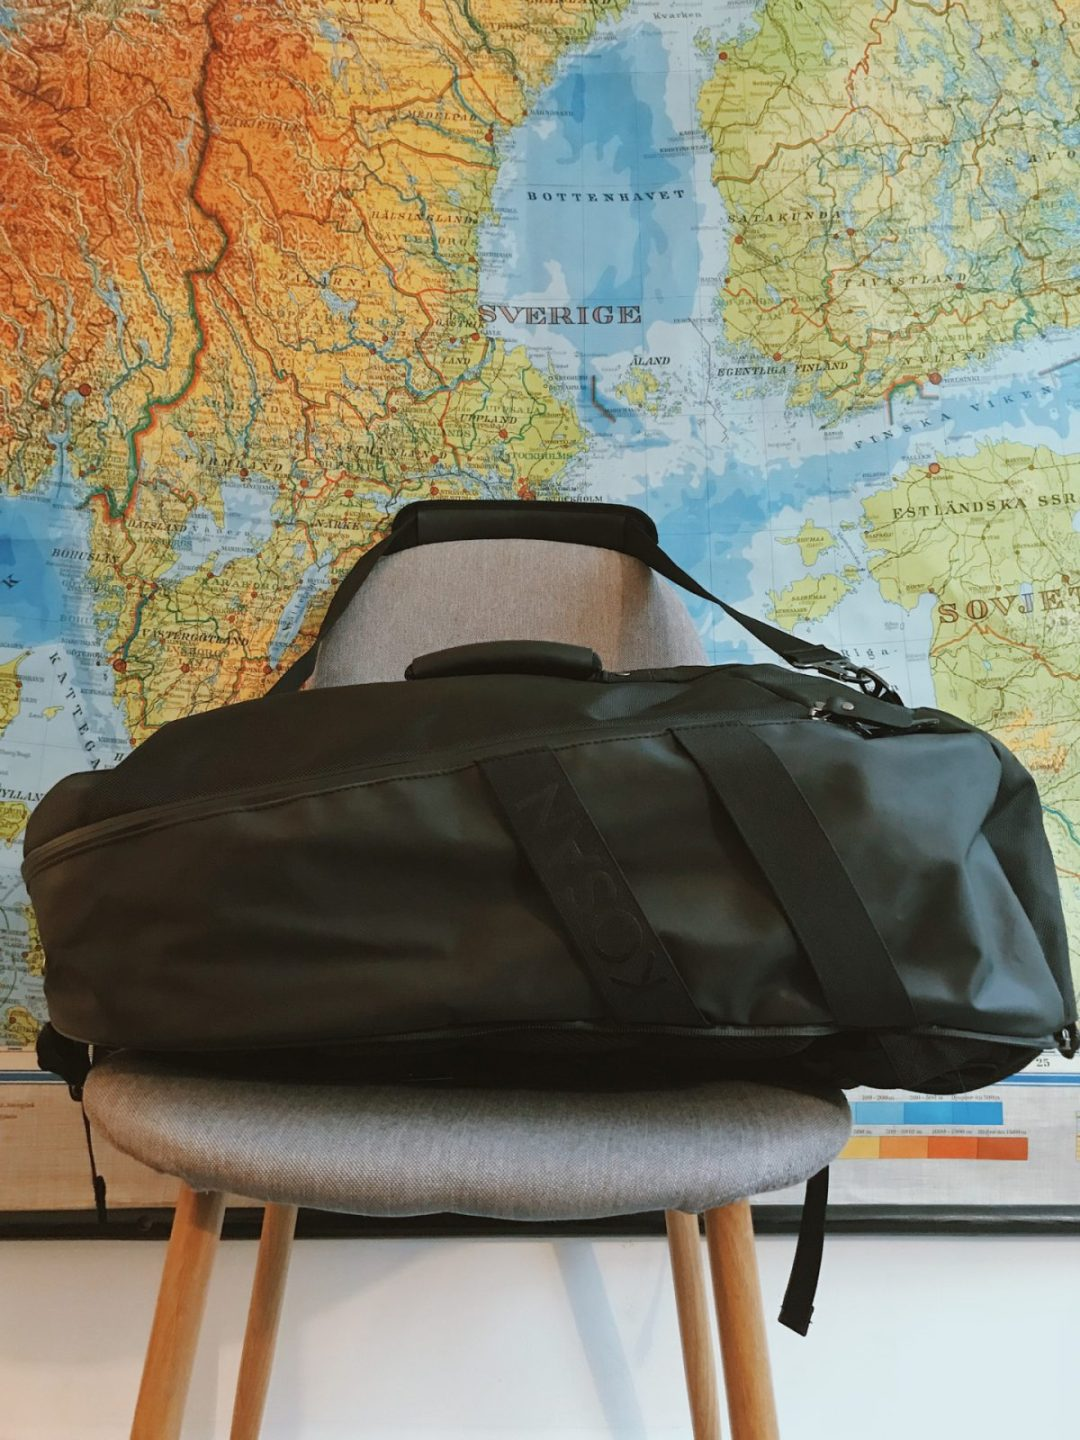 A black hiking backpack on a grey chair